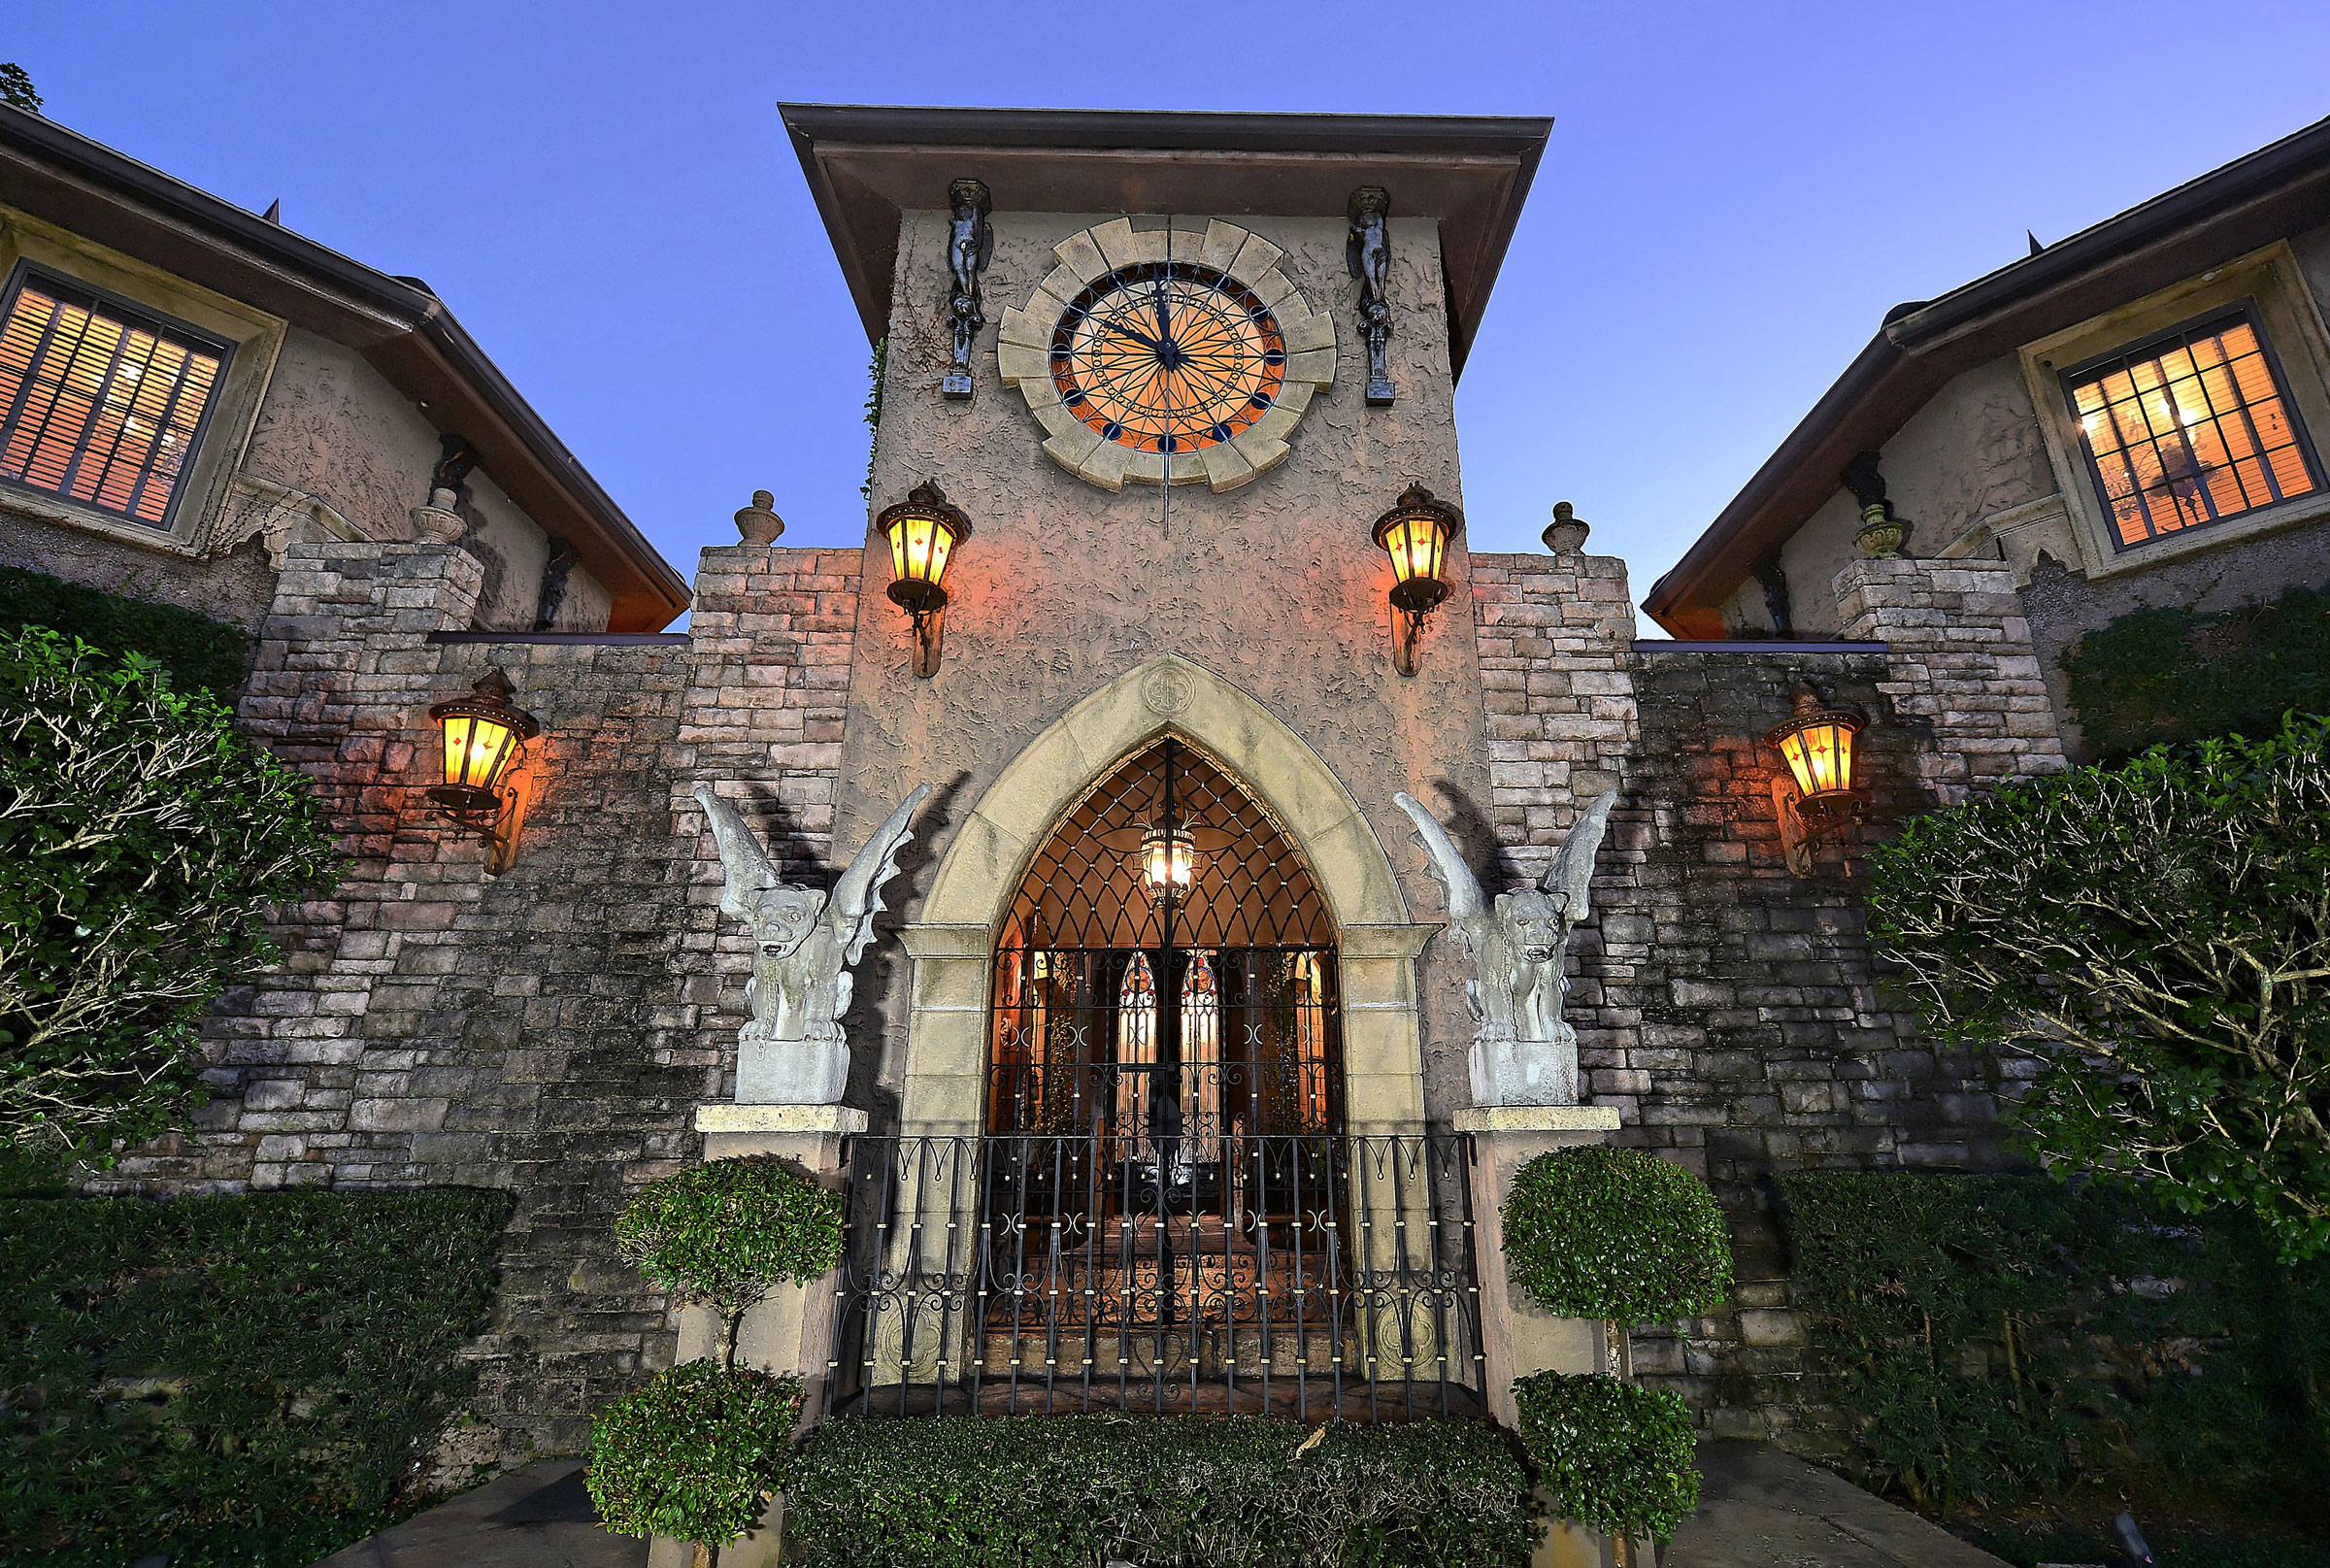 Palazzo De Colores, A One Of A Kind, Custom Designed Home In Sarasota,  Florida, Was Inspired By The Palaces Of Europe. The Enchanting Details  Begin At The ...